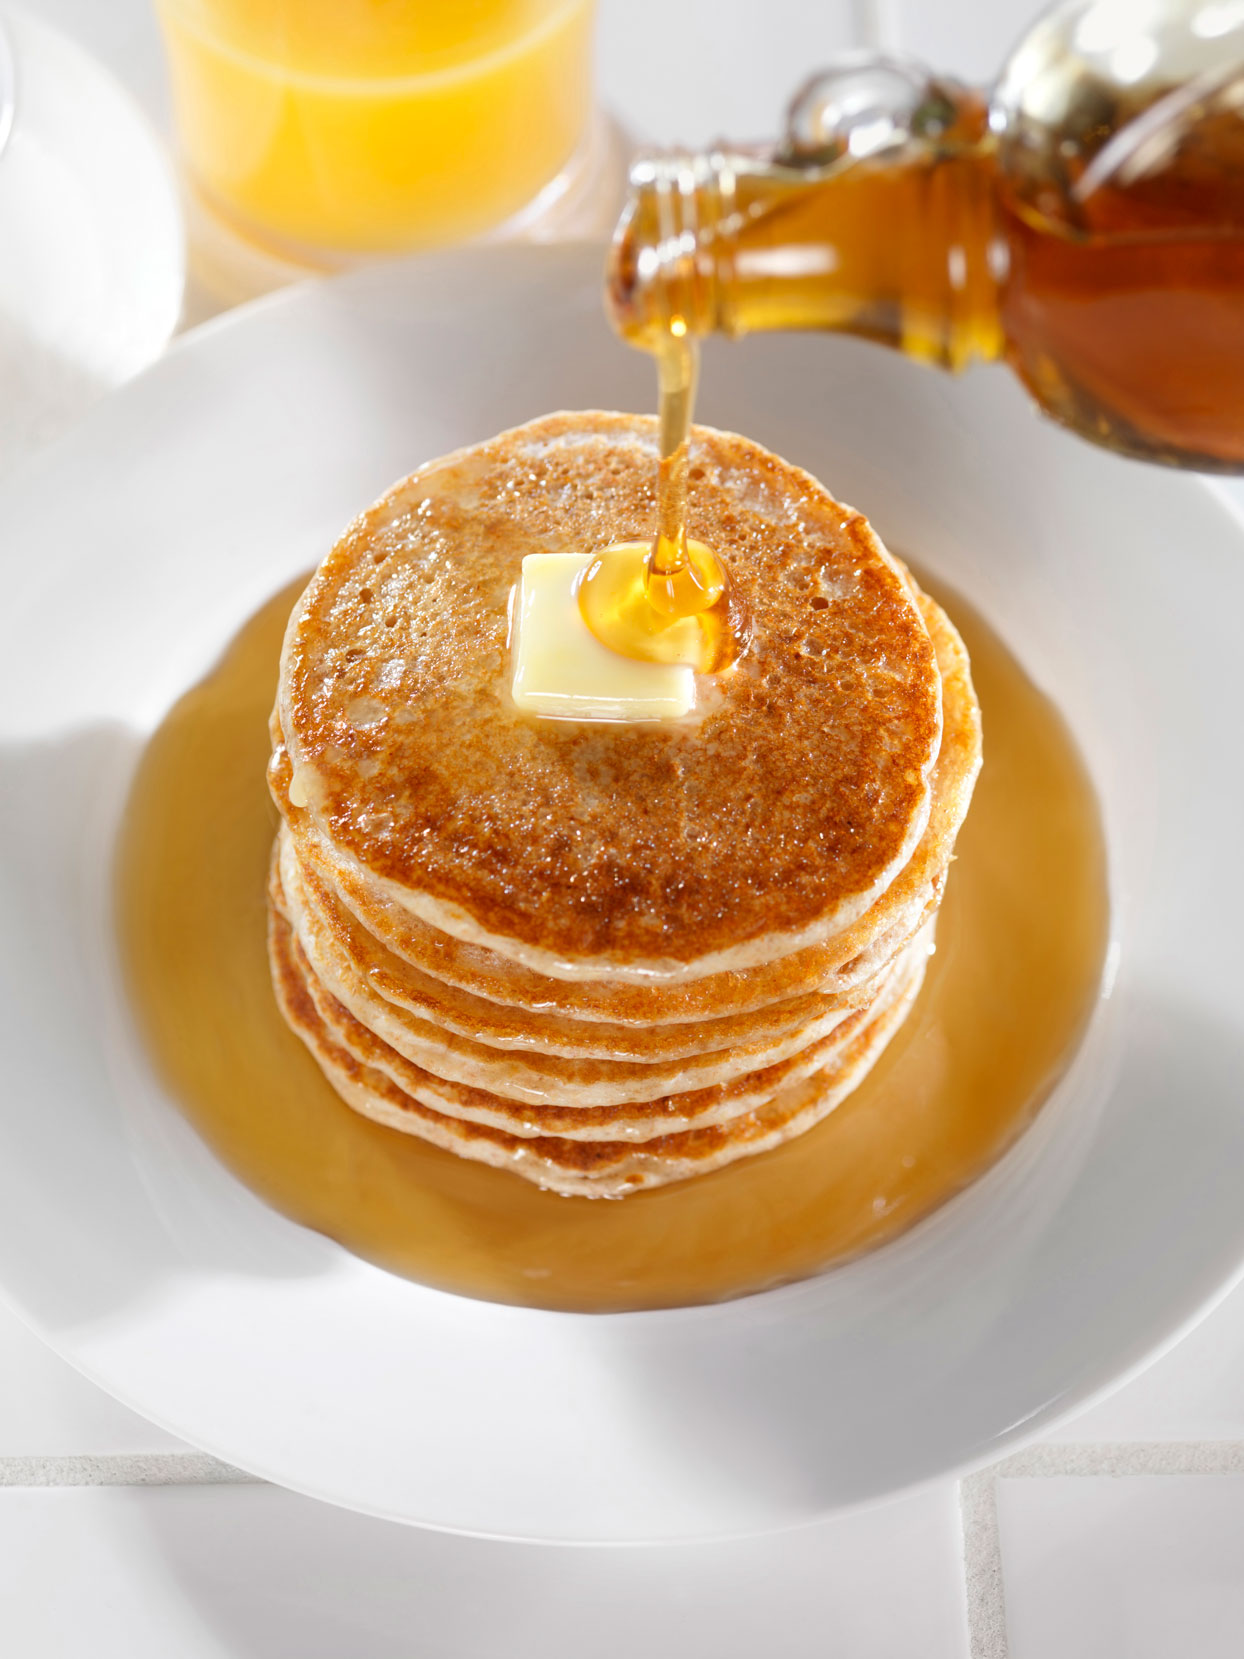 https://www.eatingwell.com/article/7873244/10-worst-breakfast-foods-to-eat-if-you-have-diabetes/stack-of-pancakes/